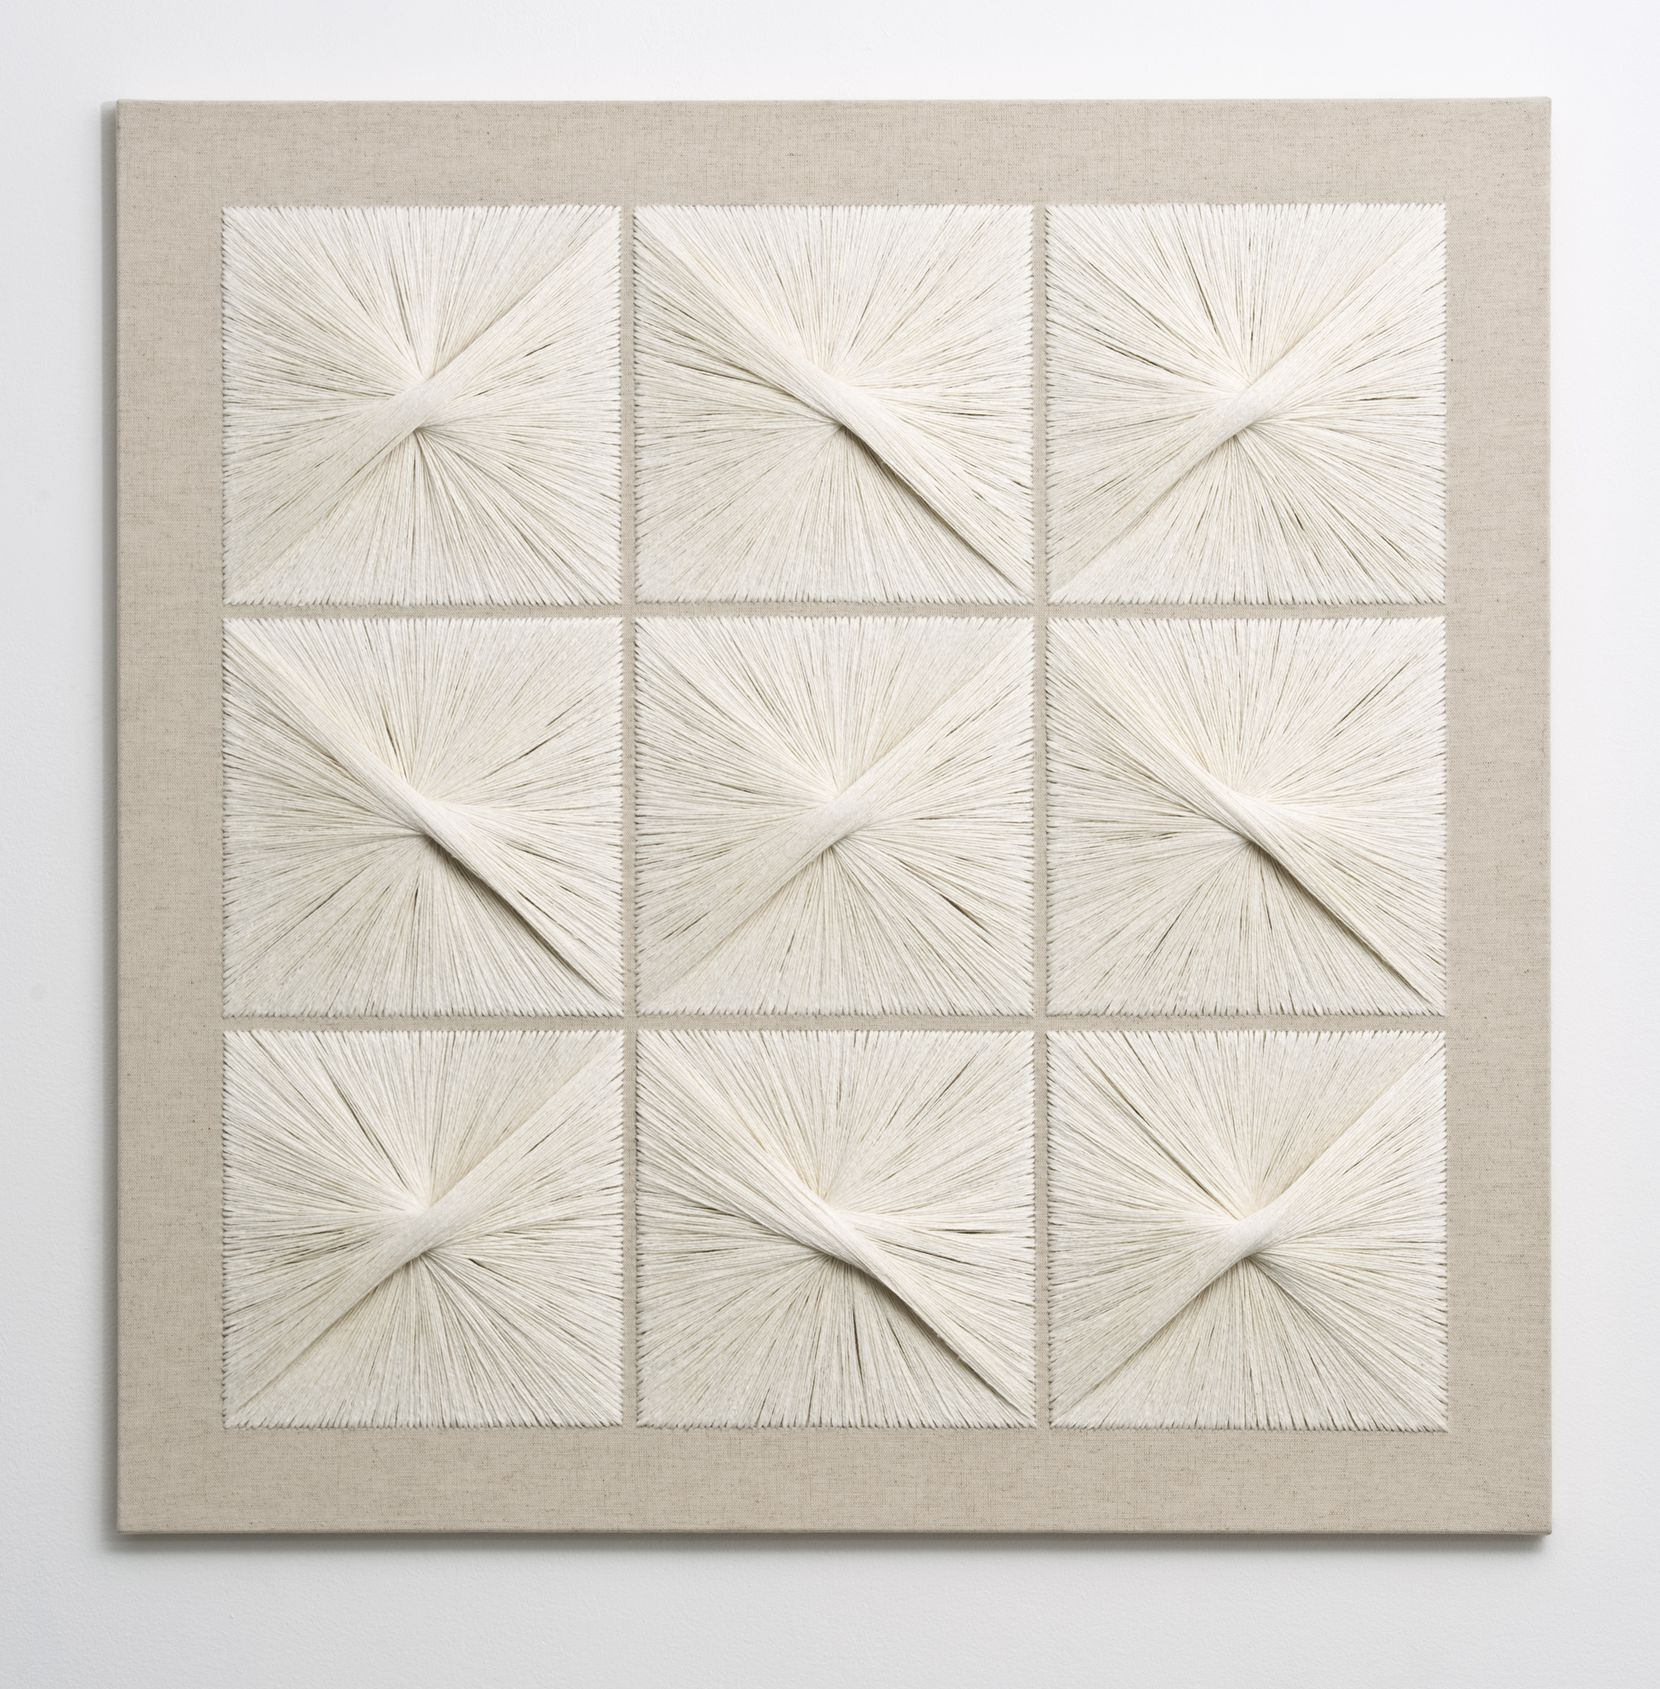 Sheila Hicks, Masonry Panel, 1981, linen, cotton, 90 x 90.5 x 2 cm.,